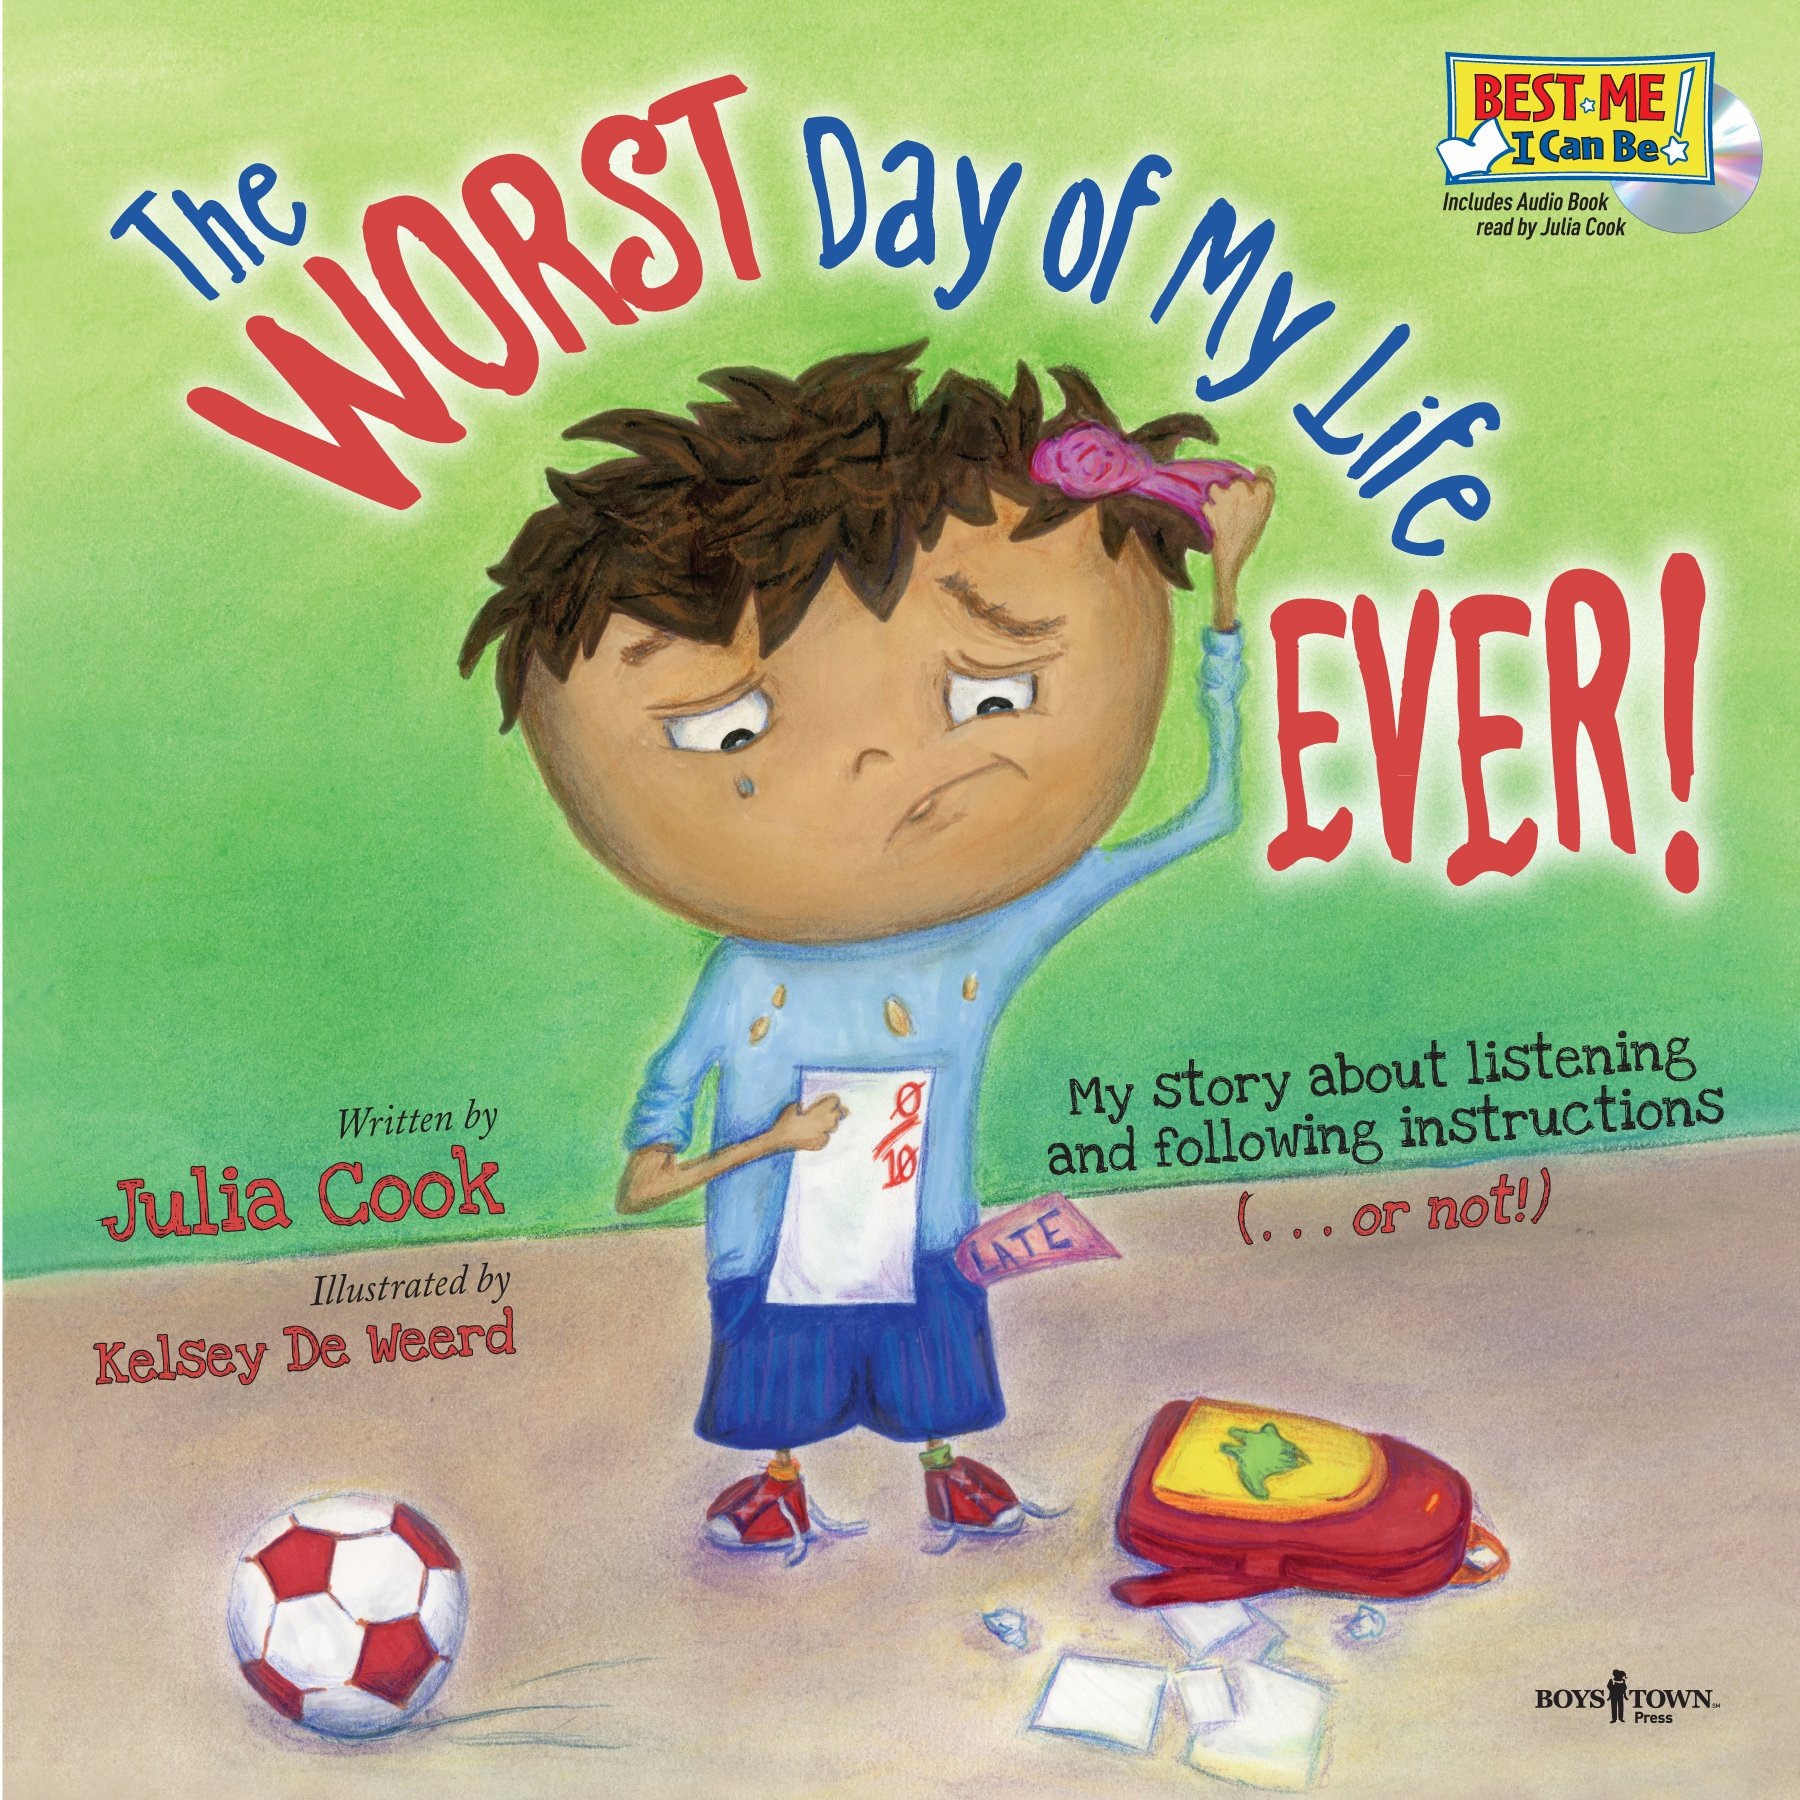 The Worst Day of My Life Ever! with Audio CD (Best Me I Can Be!)